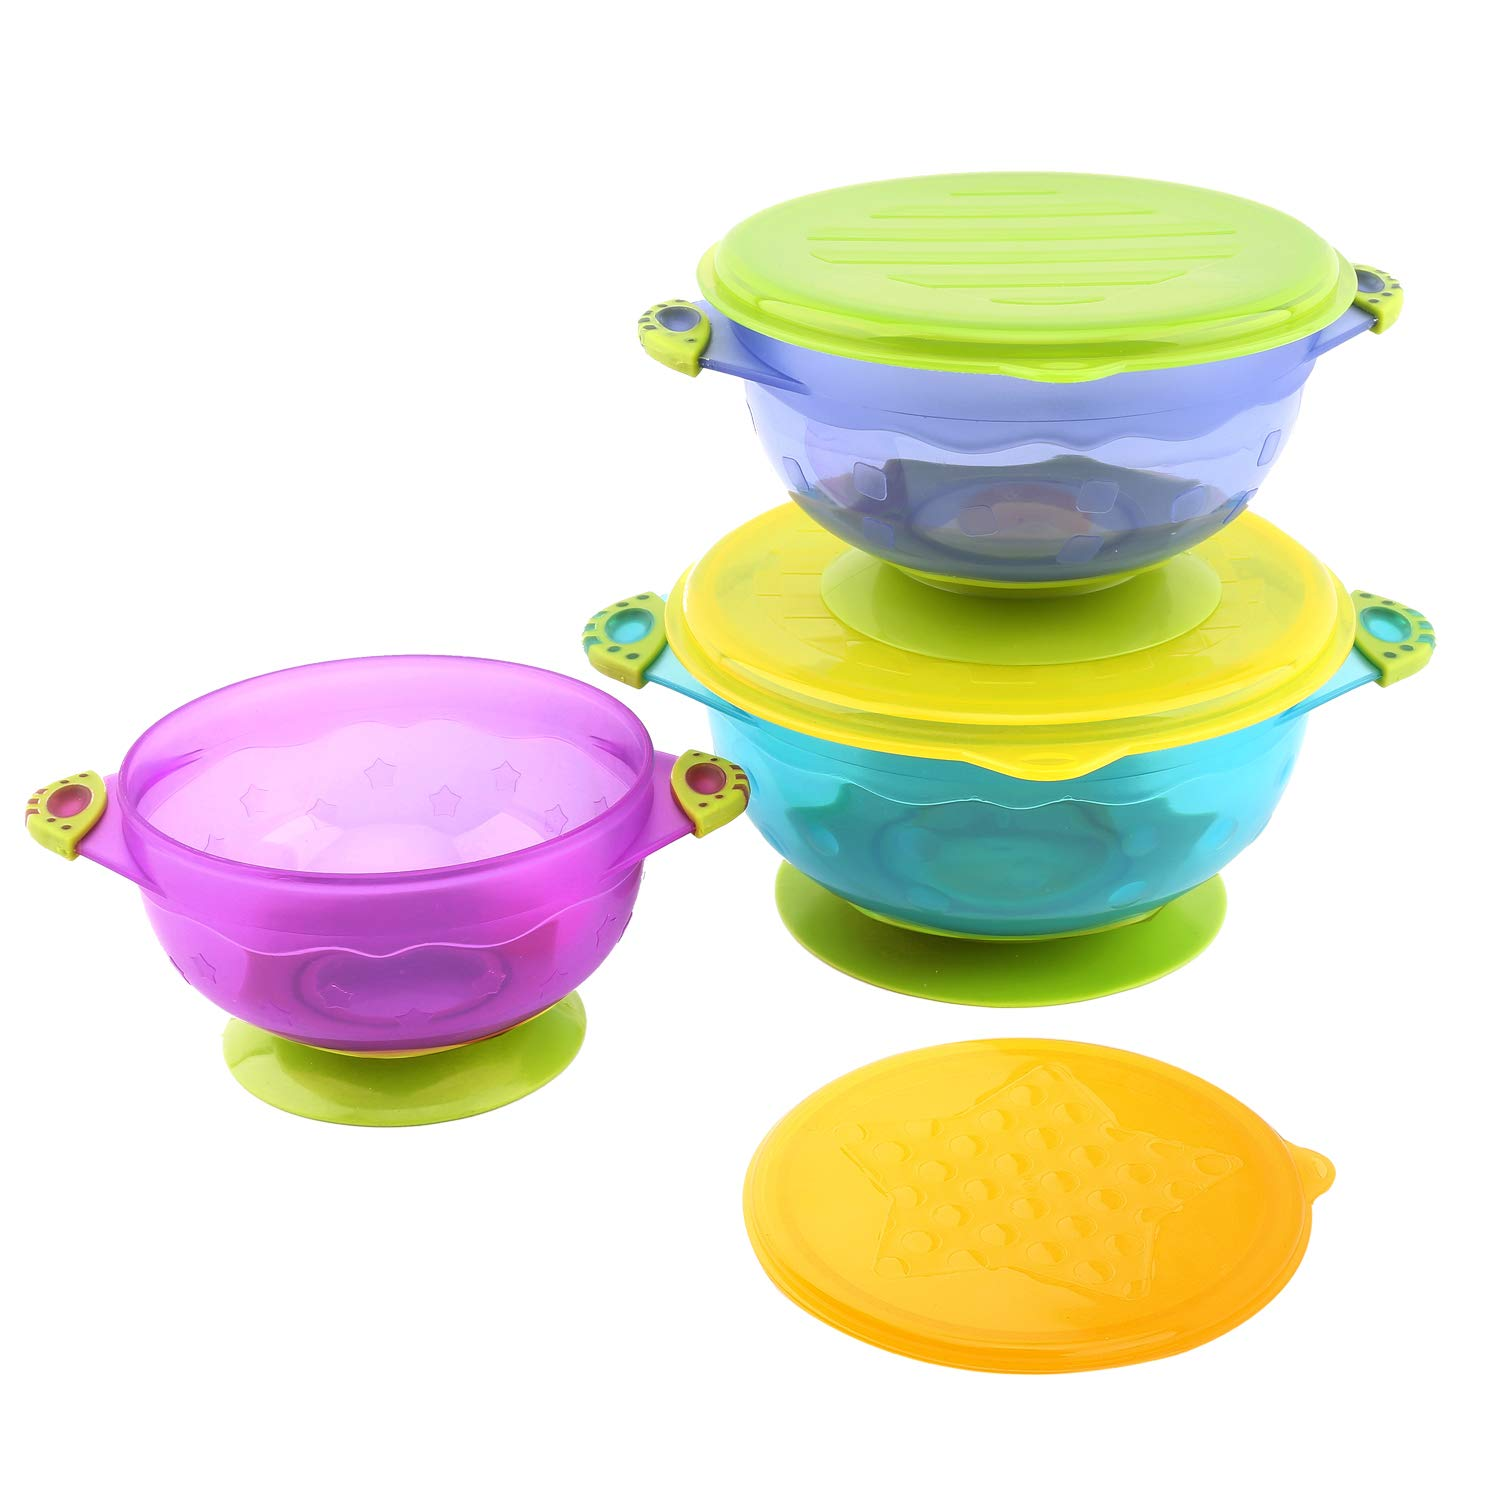 Zooawa Baby Bowls with Suction Base, 3-Pack Nonslip Spill Proof Feeding Training Bowl Dinnerware with Seal Easy Lid for Babies, BPA-Free, for Over 6 Months Infants, Colorful